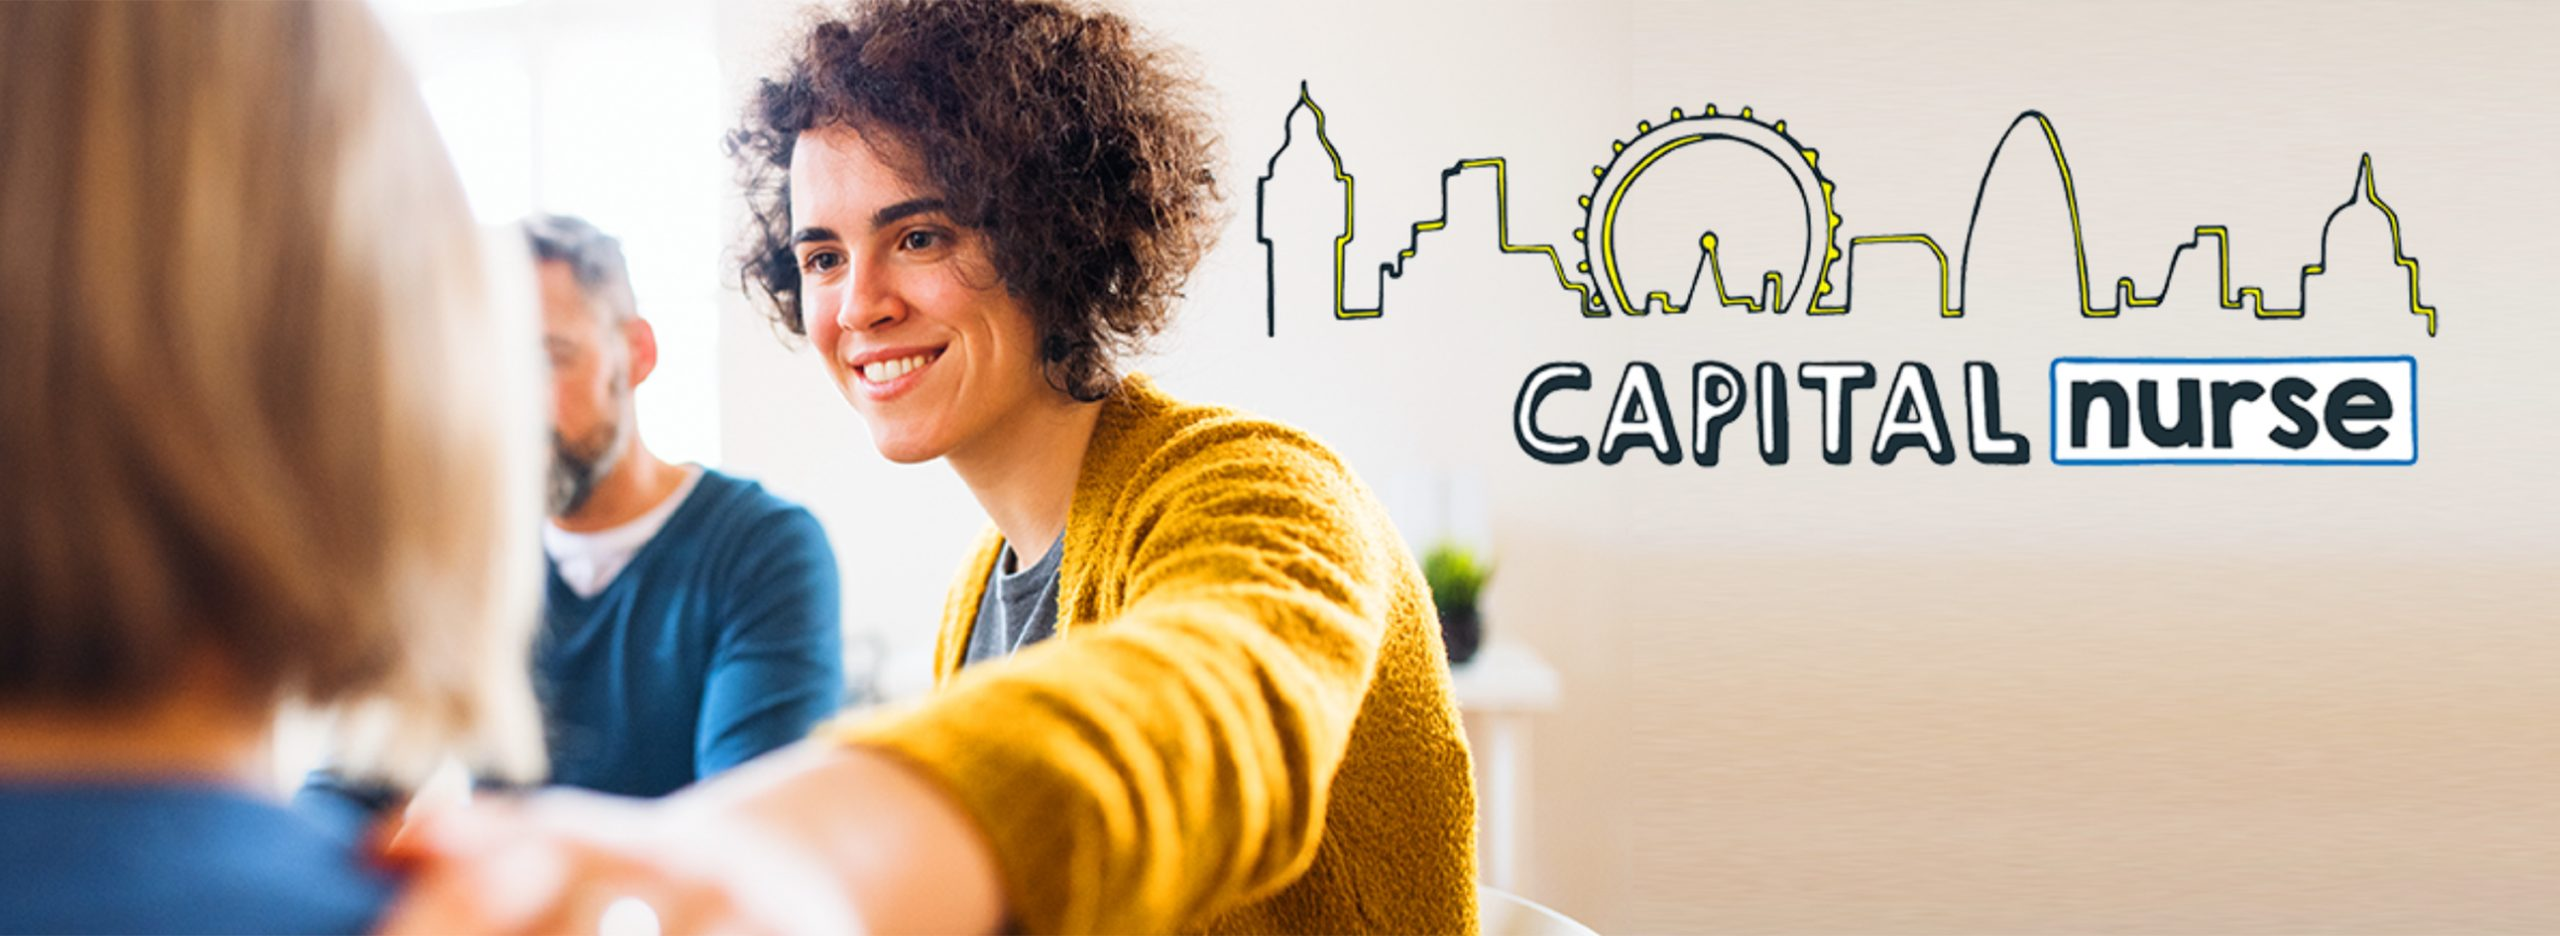 Video interviews for Registered Nurses with experience in Mental Health – CapitalNurse London